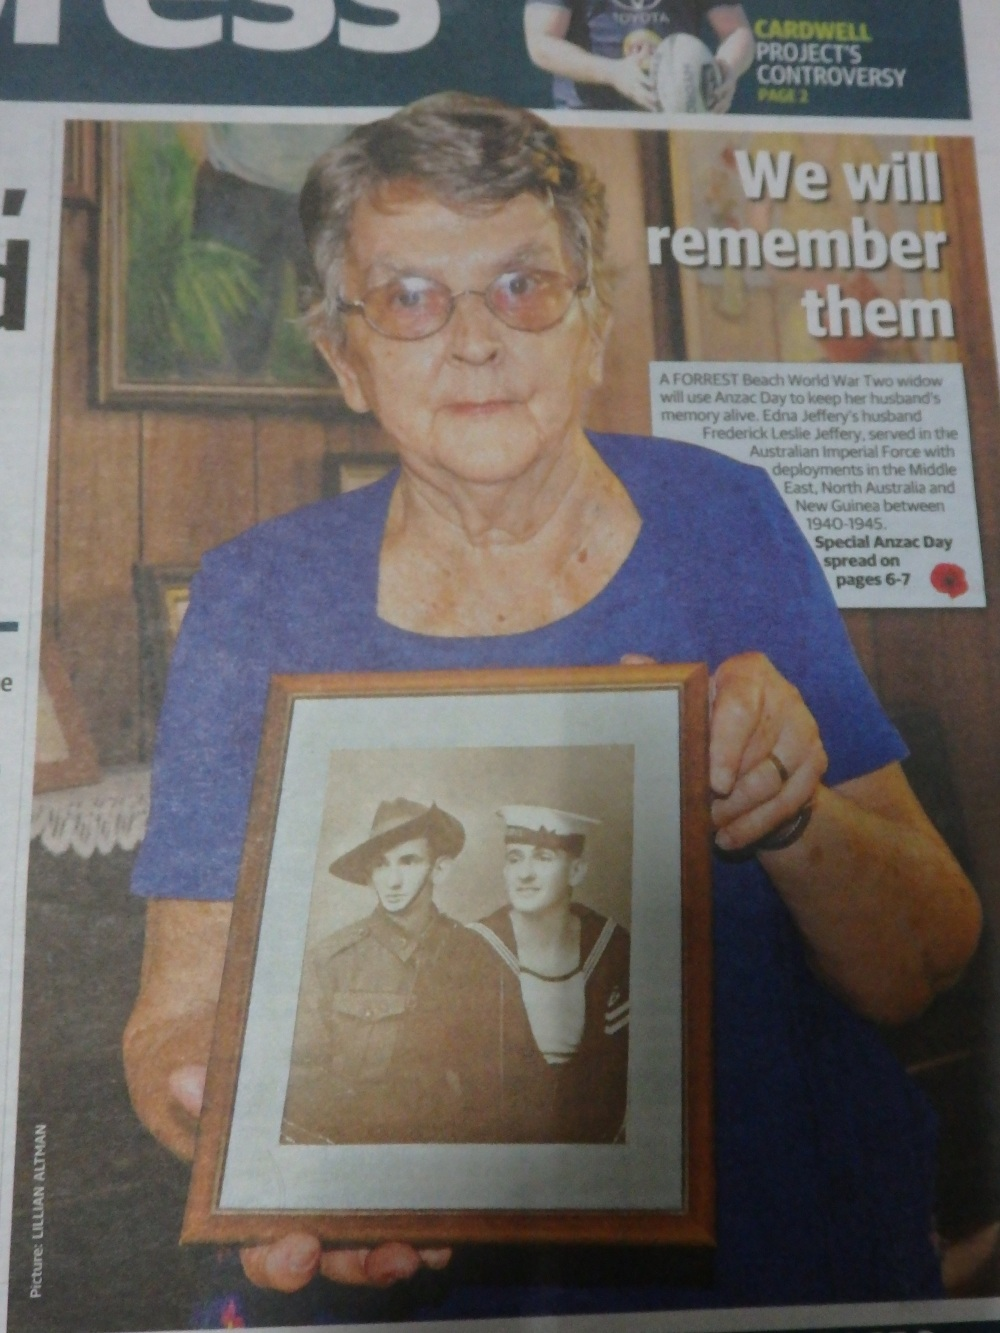 Edna Jeffery holding a photo of her late husband and his brother